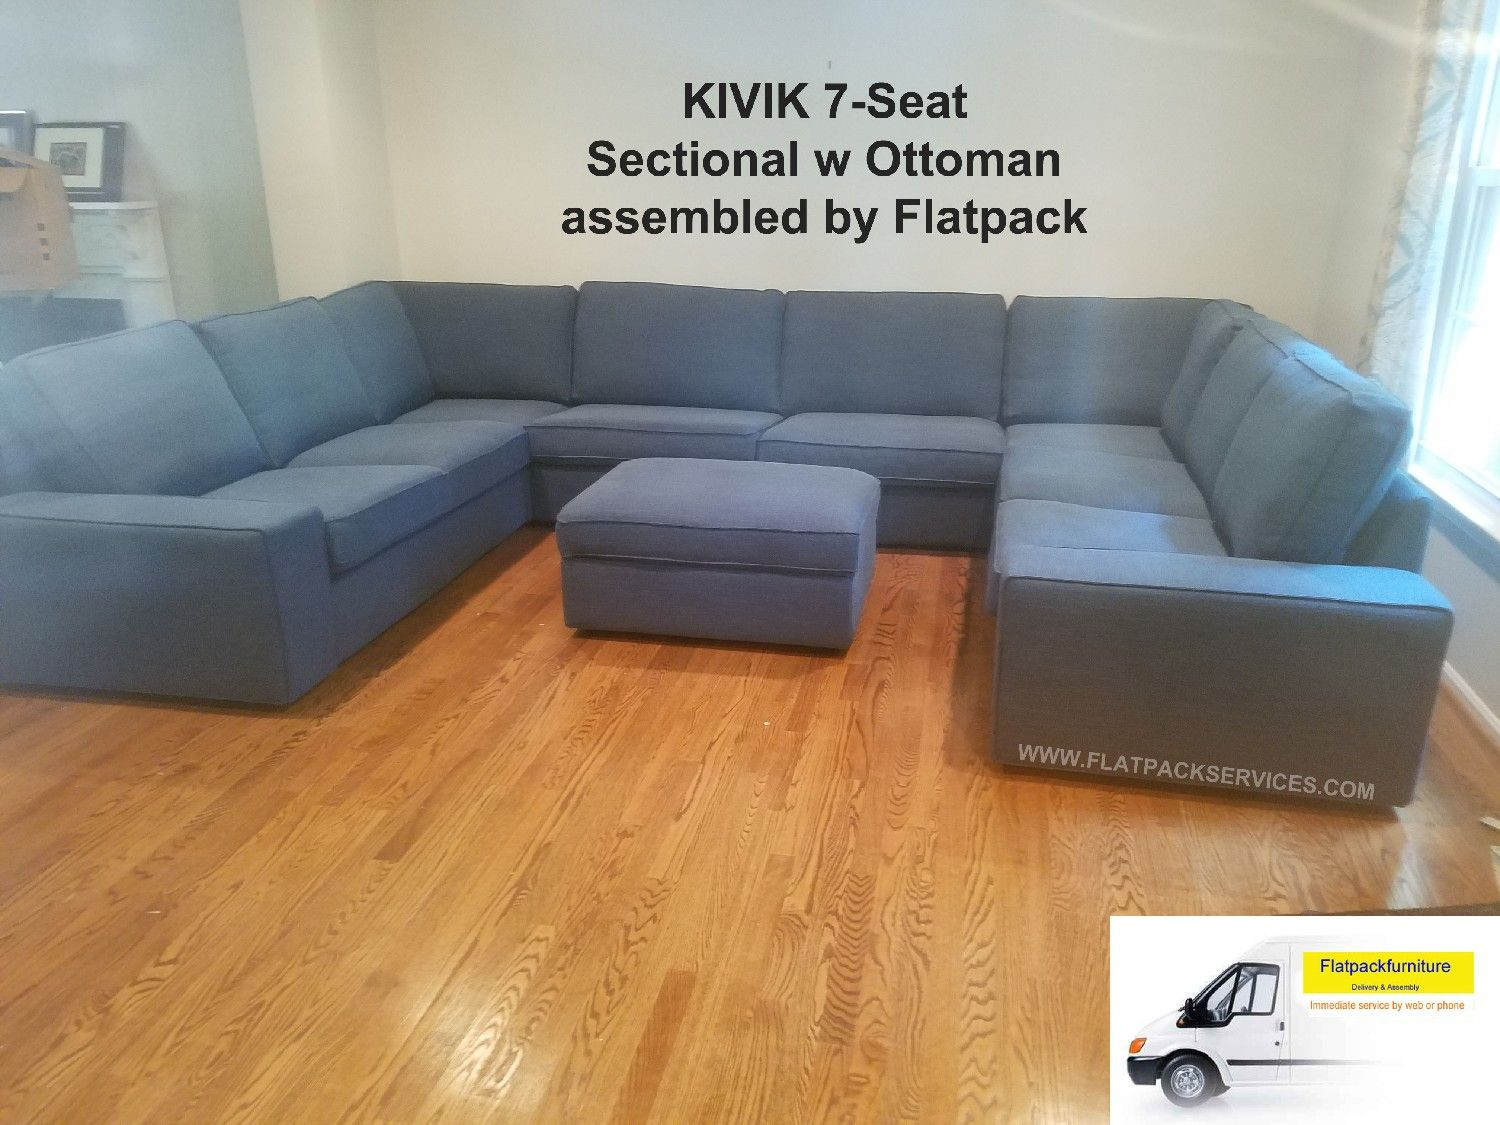 Kivik Sofa Assembly In DC Help Assembling Furniture   Competitive Quotes In  Minutes IKEA Assembly Service Same Day Washington DC Virginia MD 240  603 2781 ...